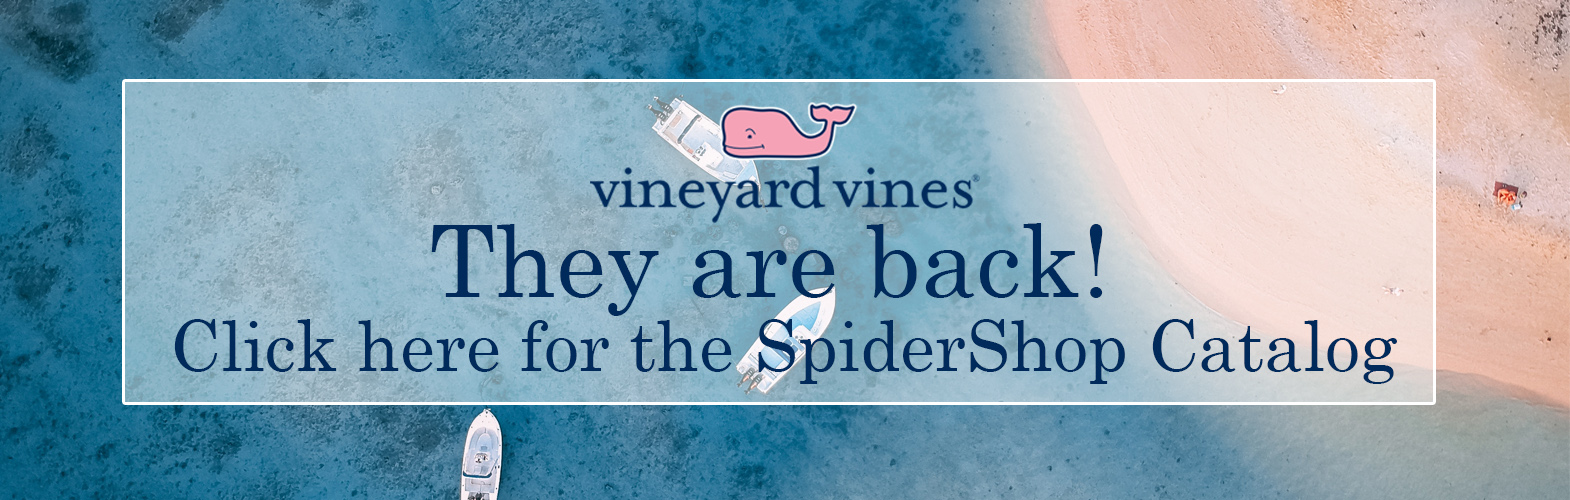 Vineyard Vines back